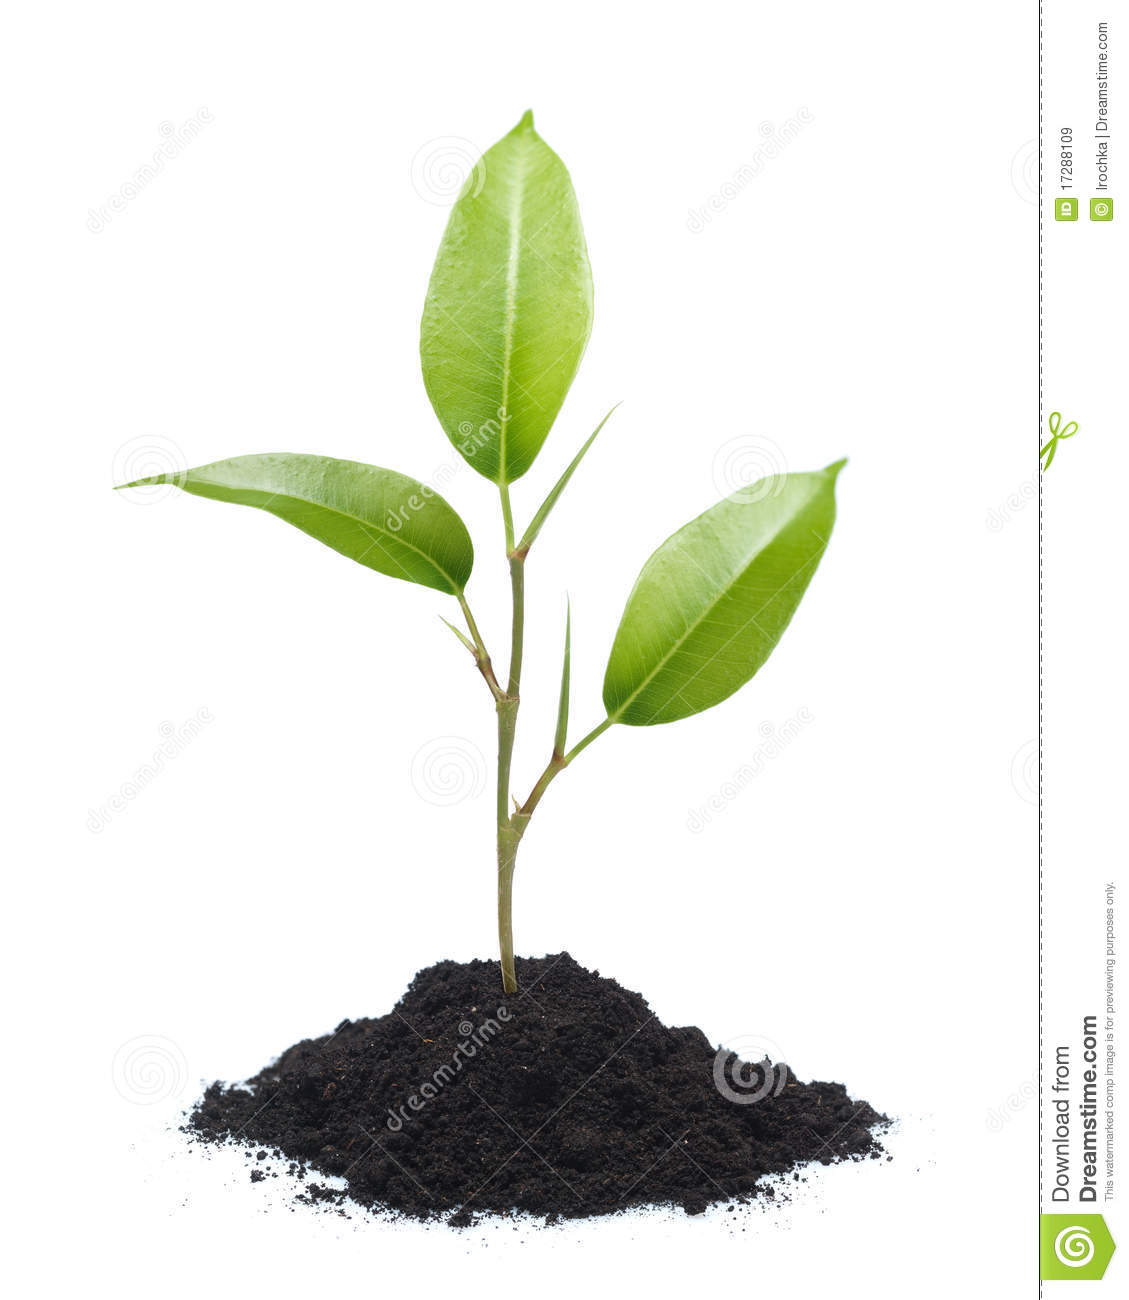 Http Www Dreamstime Com Royalty Free Stock Images Young Plant Isolated Image17288109